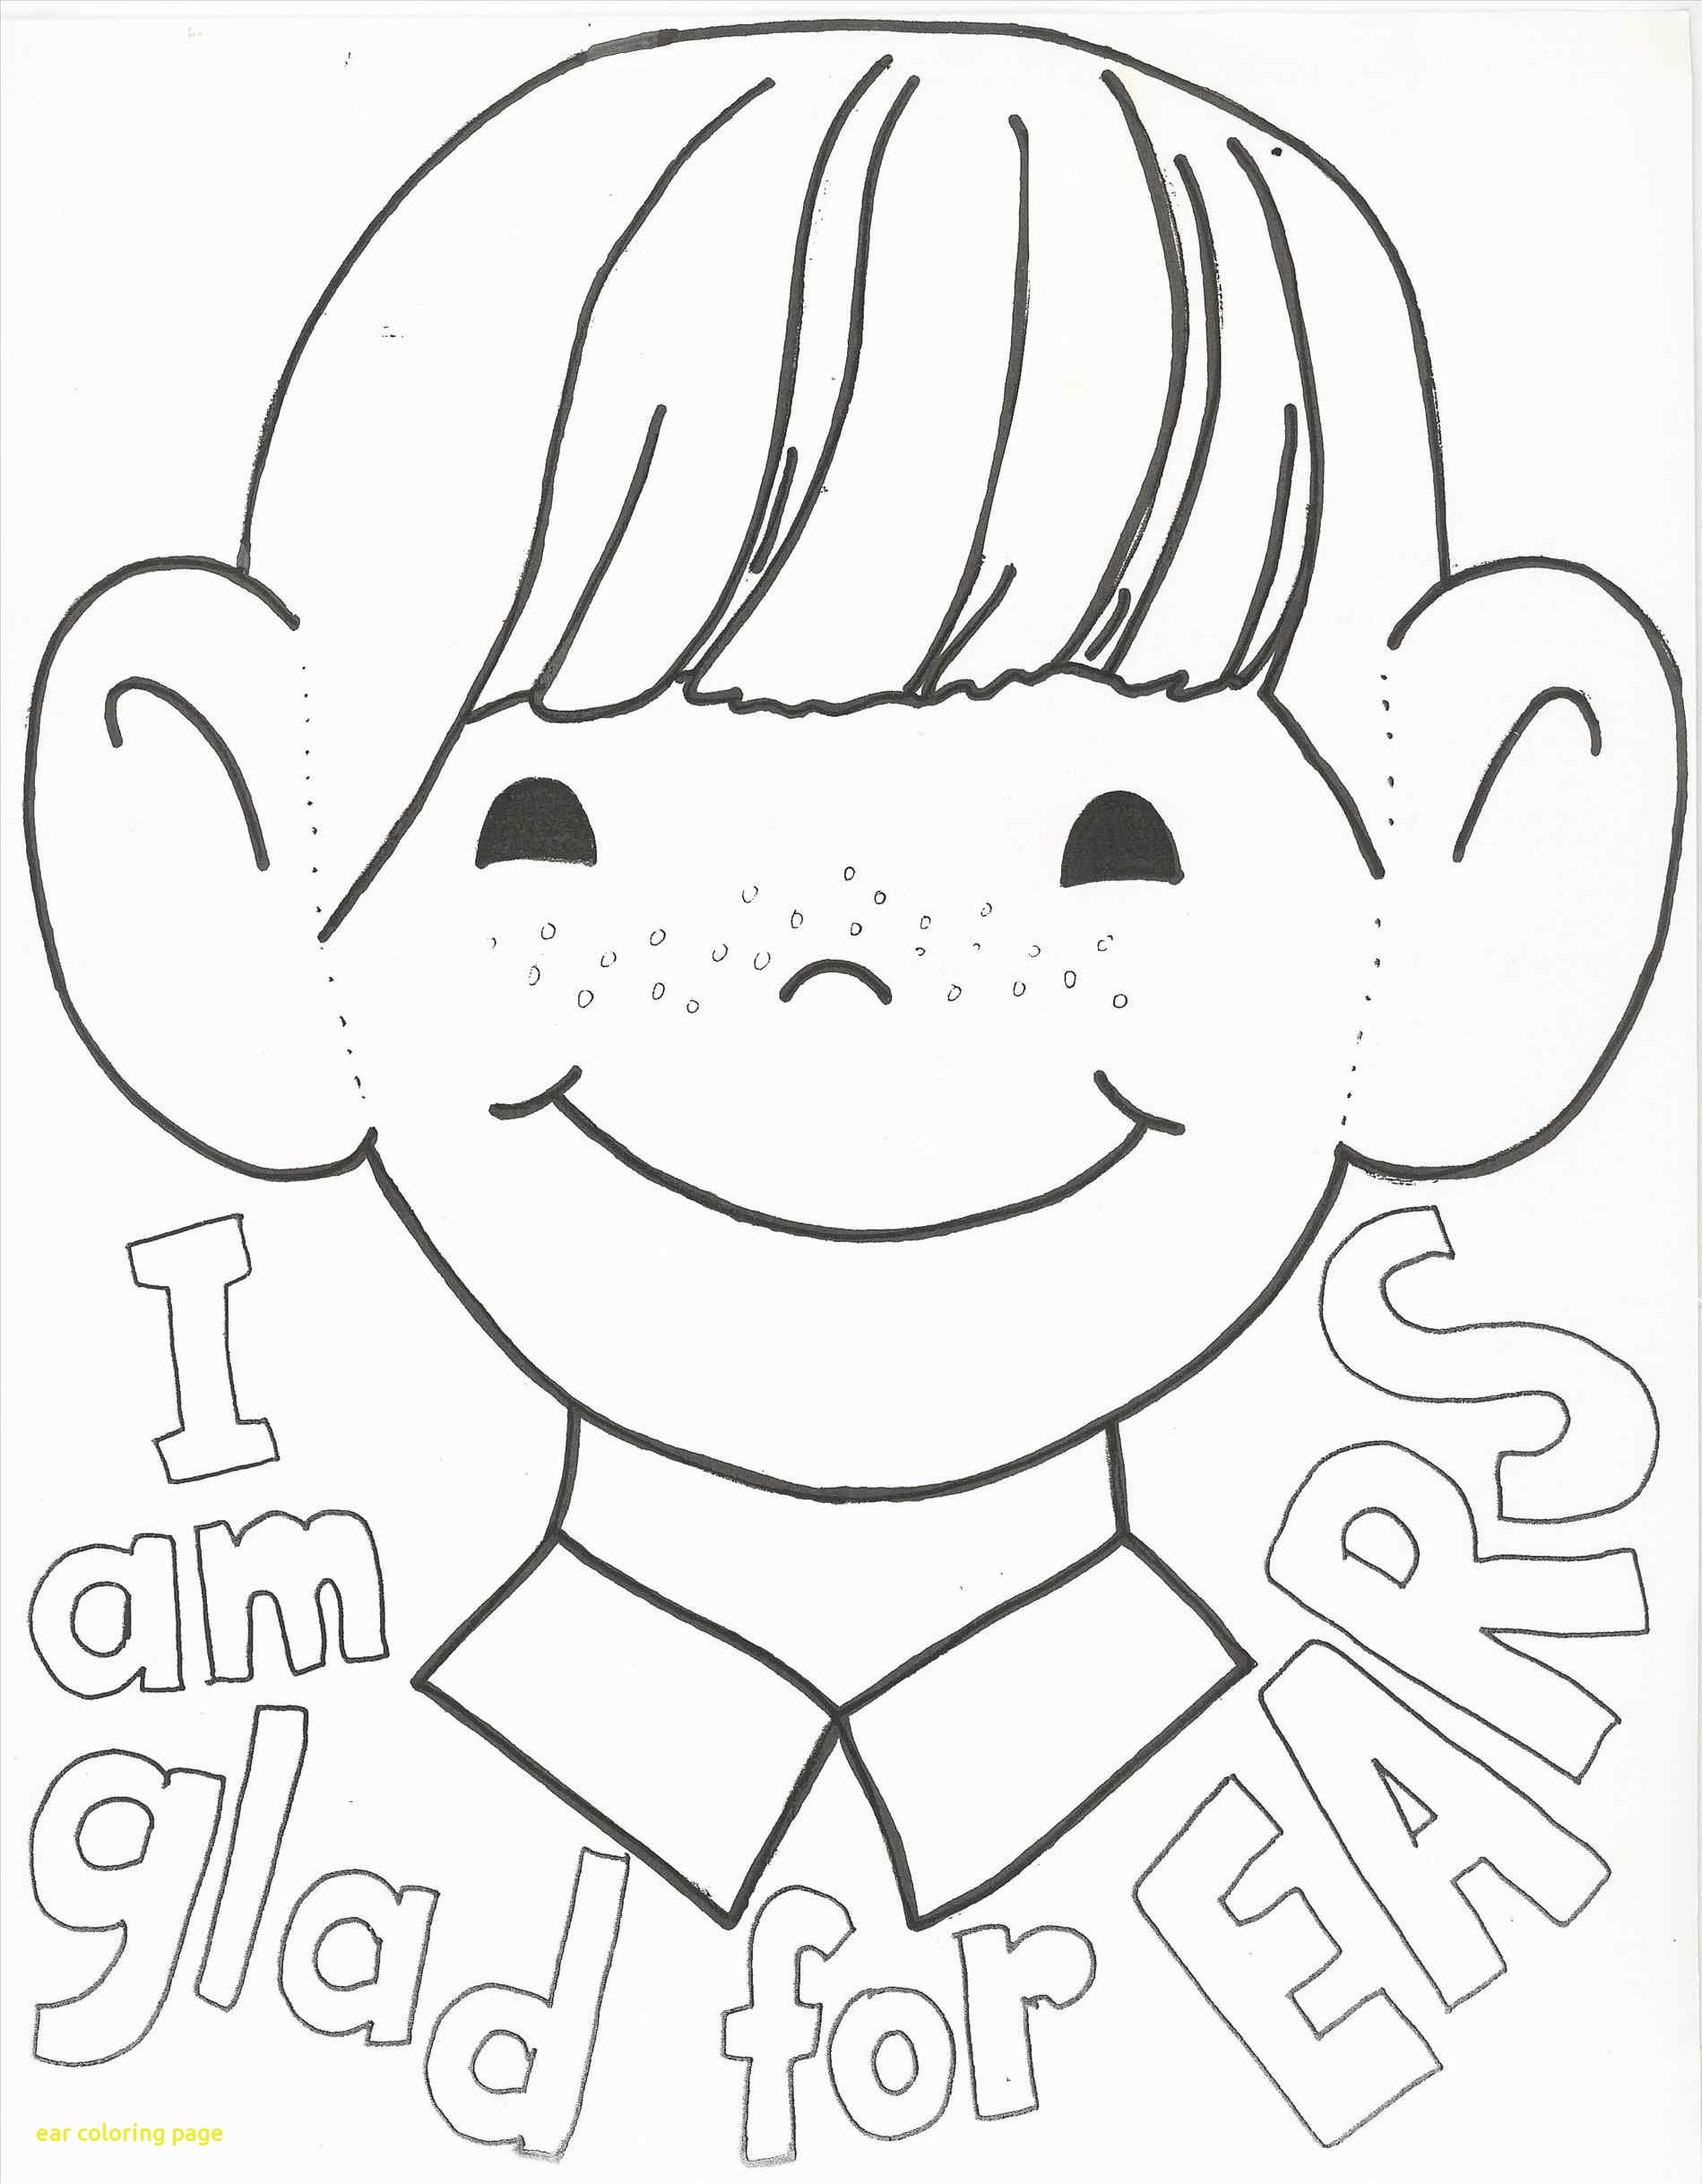 1899x2437 Ear Coloring Page With Printable 2014 Human Pages For